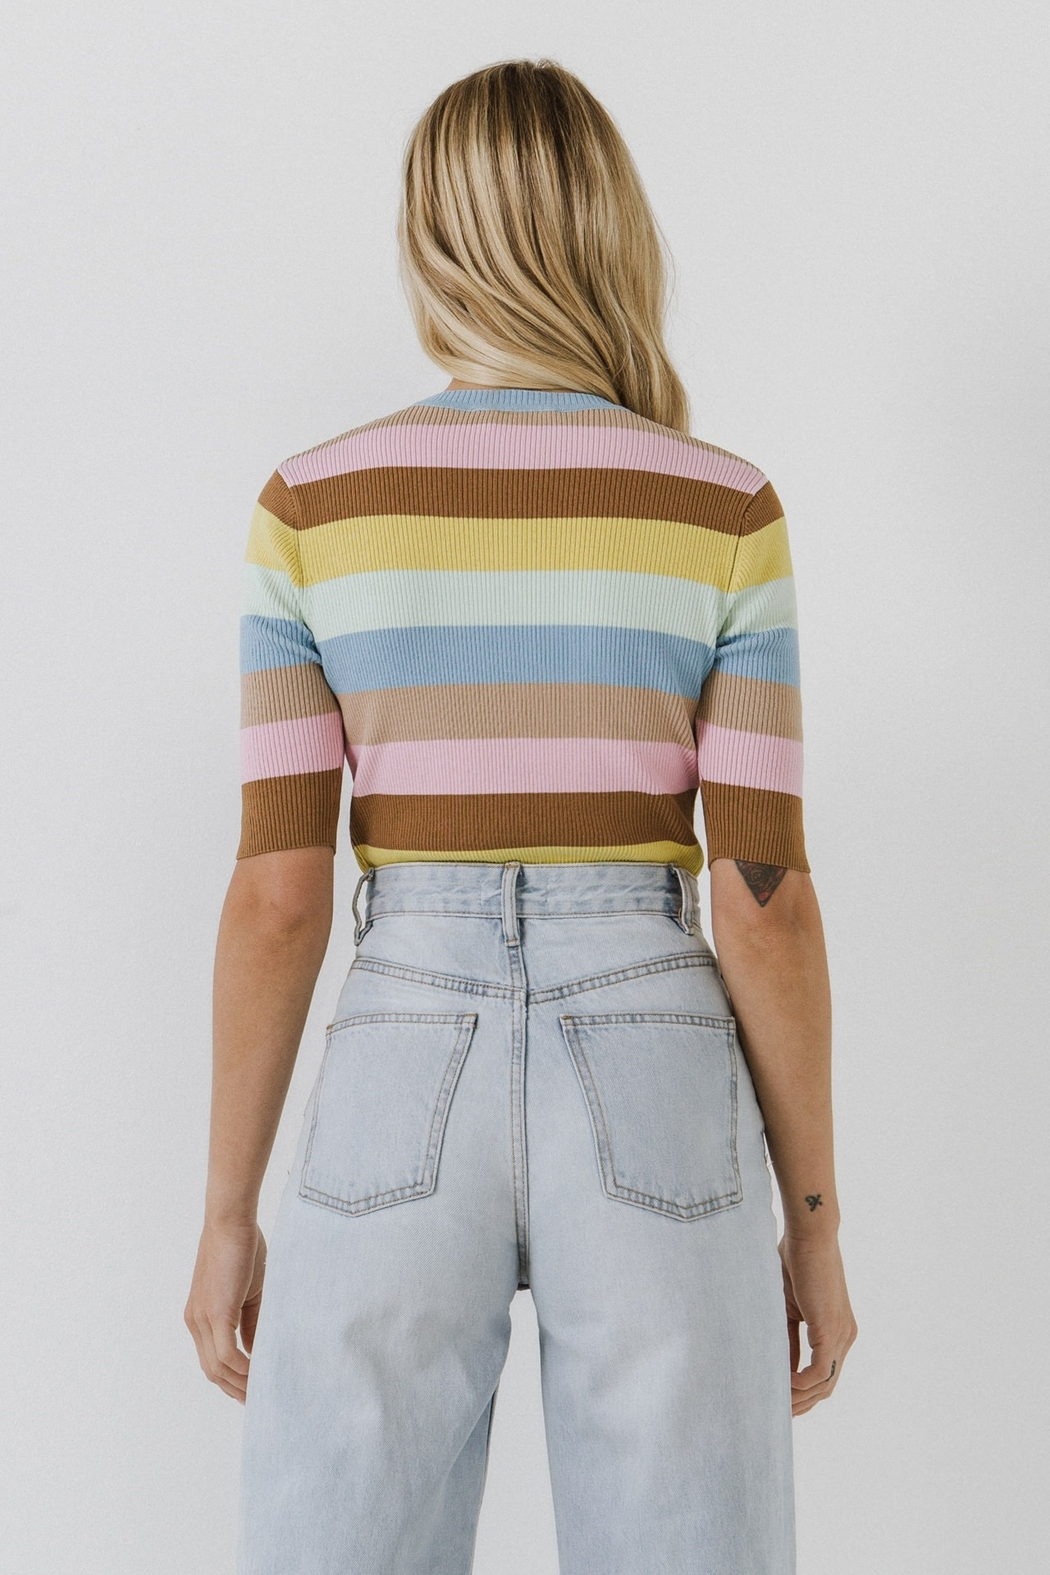 English Factory Multi Color Stripe Sweater - Side Cropped Image